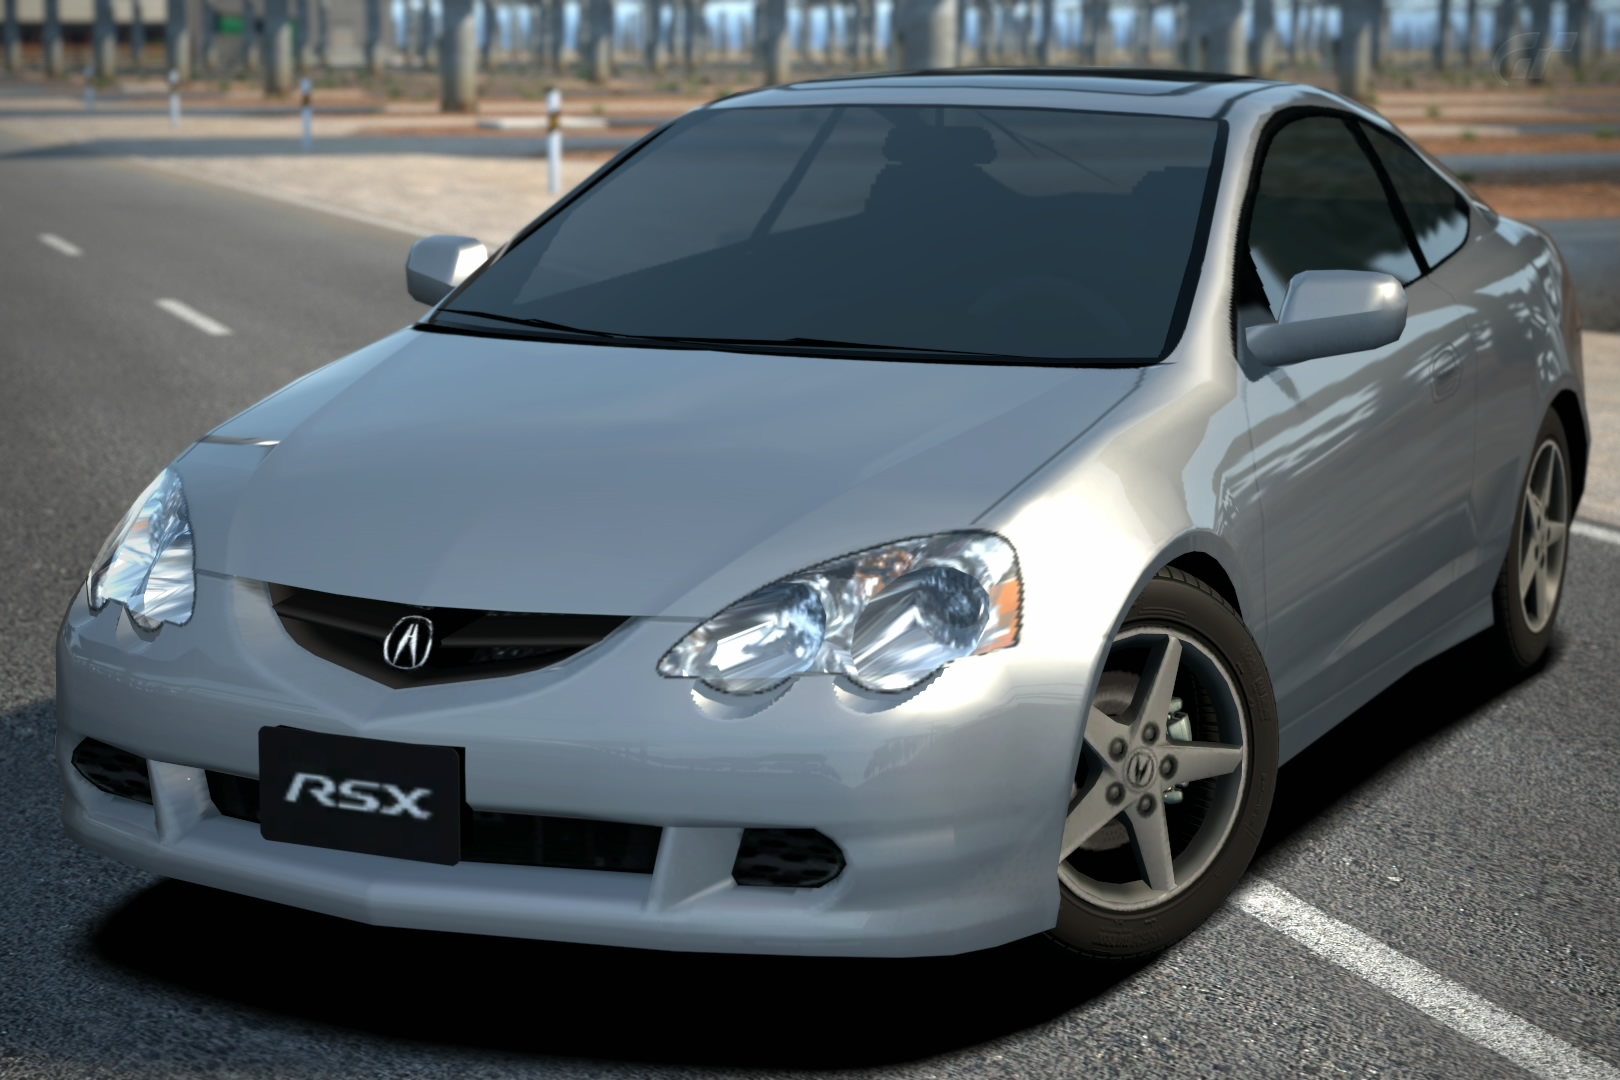 2004 Acura Rsx Type S >> Acura Rsx Type S 04 Gran Turismo Wiki Fandom Powered By